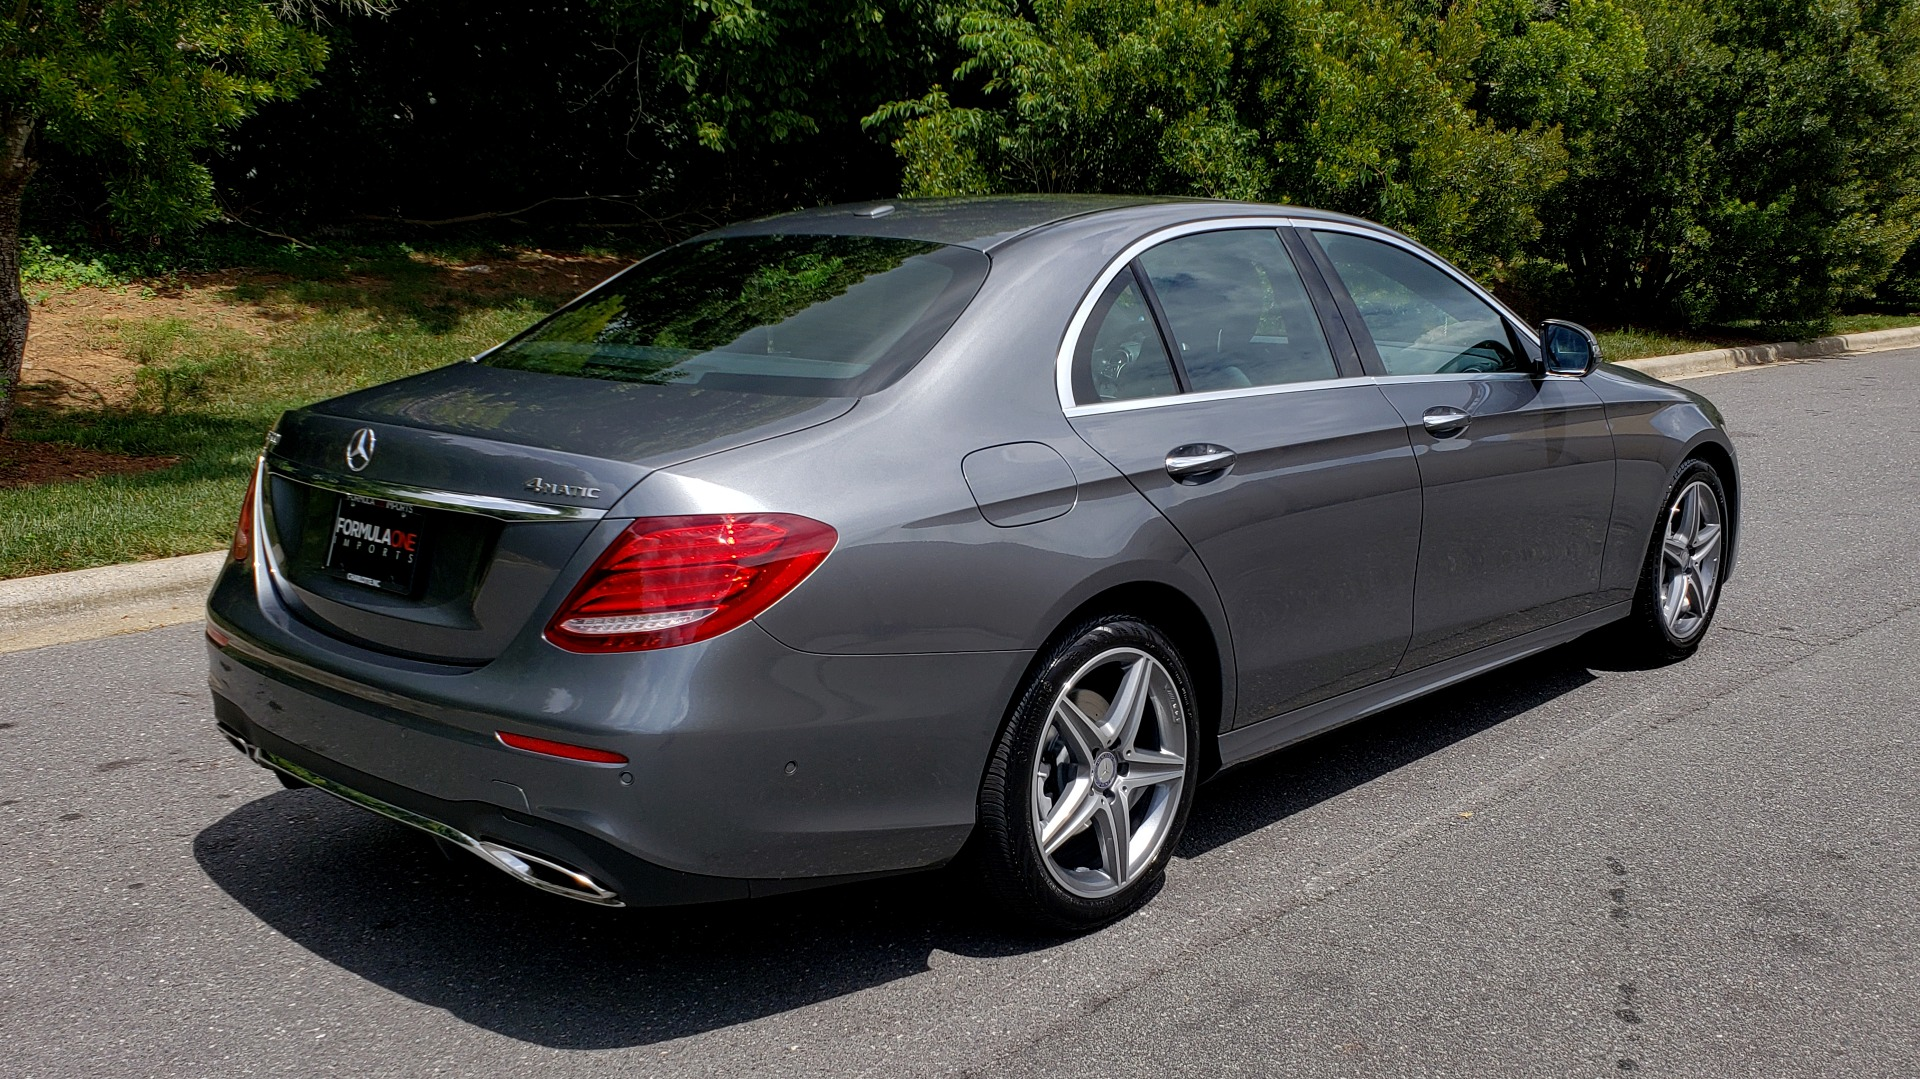 Used 2017 Mercedes-Benz E-Class E 300 4MATIC PREMIUM / SPORT / NAV / BURMESTER / HTD STS / REARVIEW for sale $30,495 at Formula Imports in Charlotte NC 28227 6